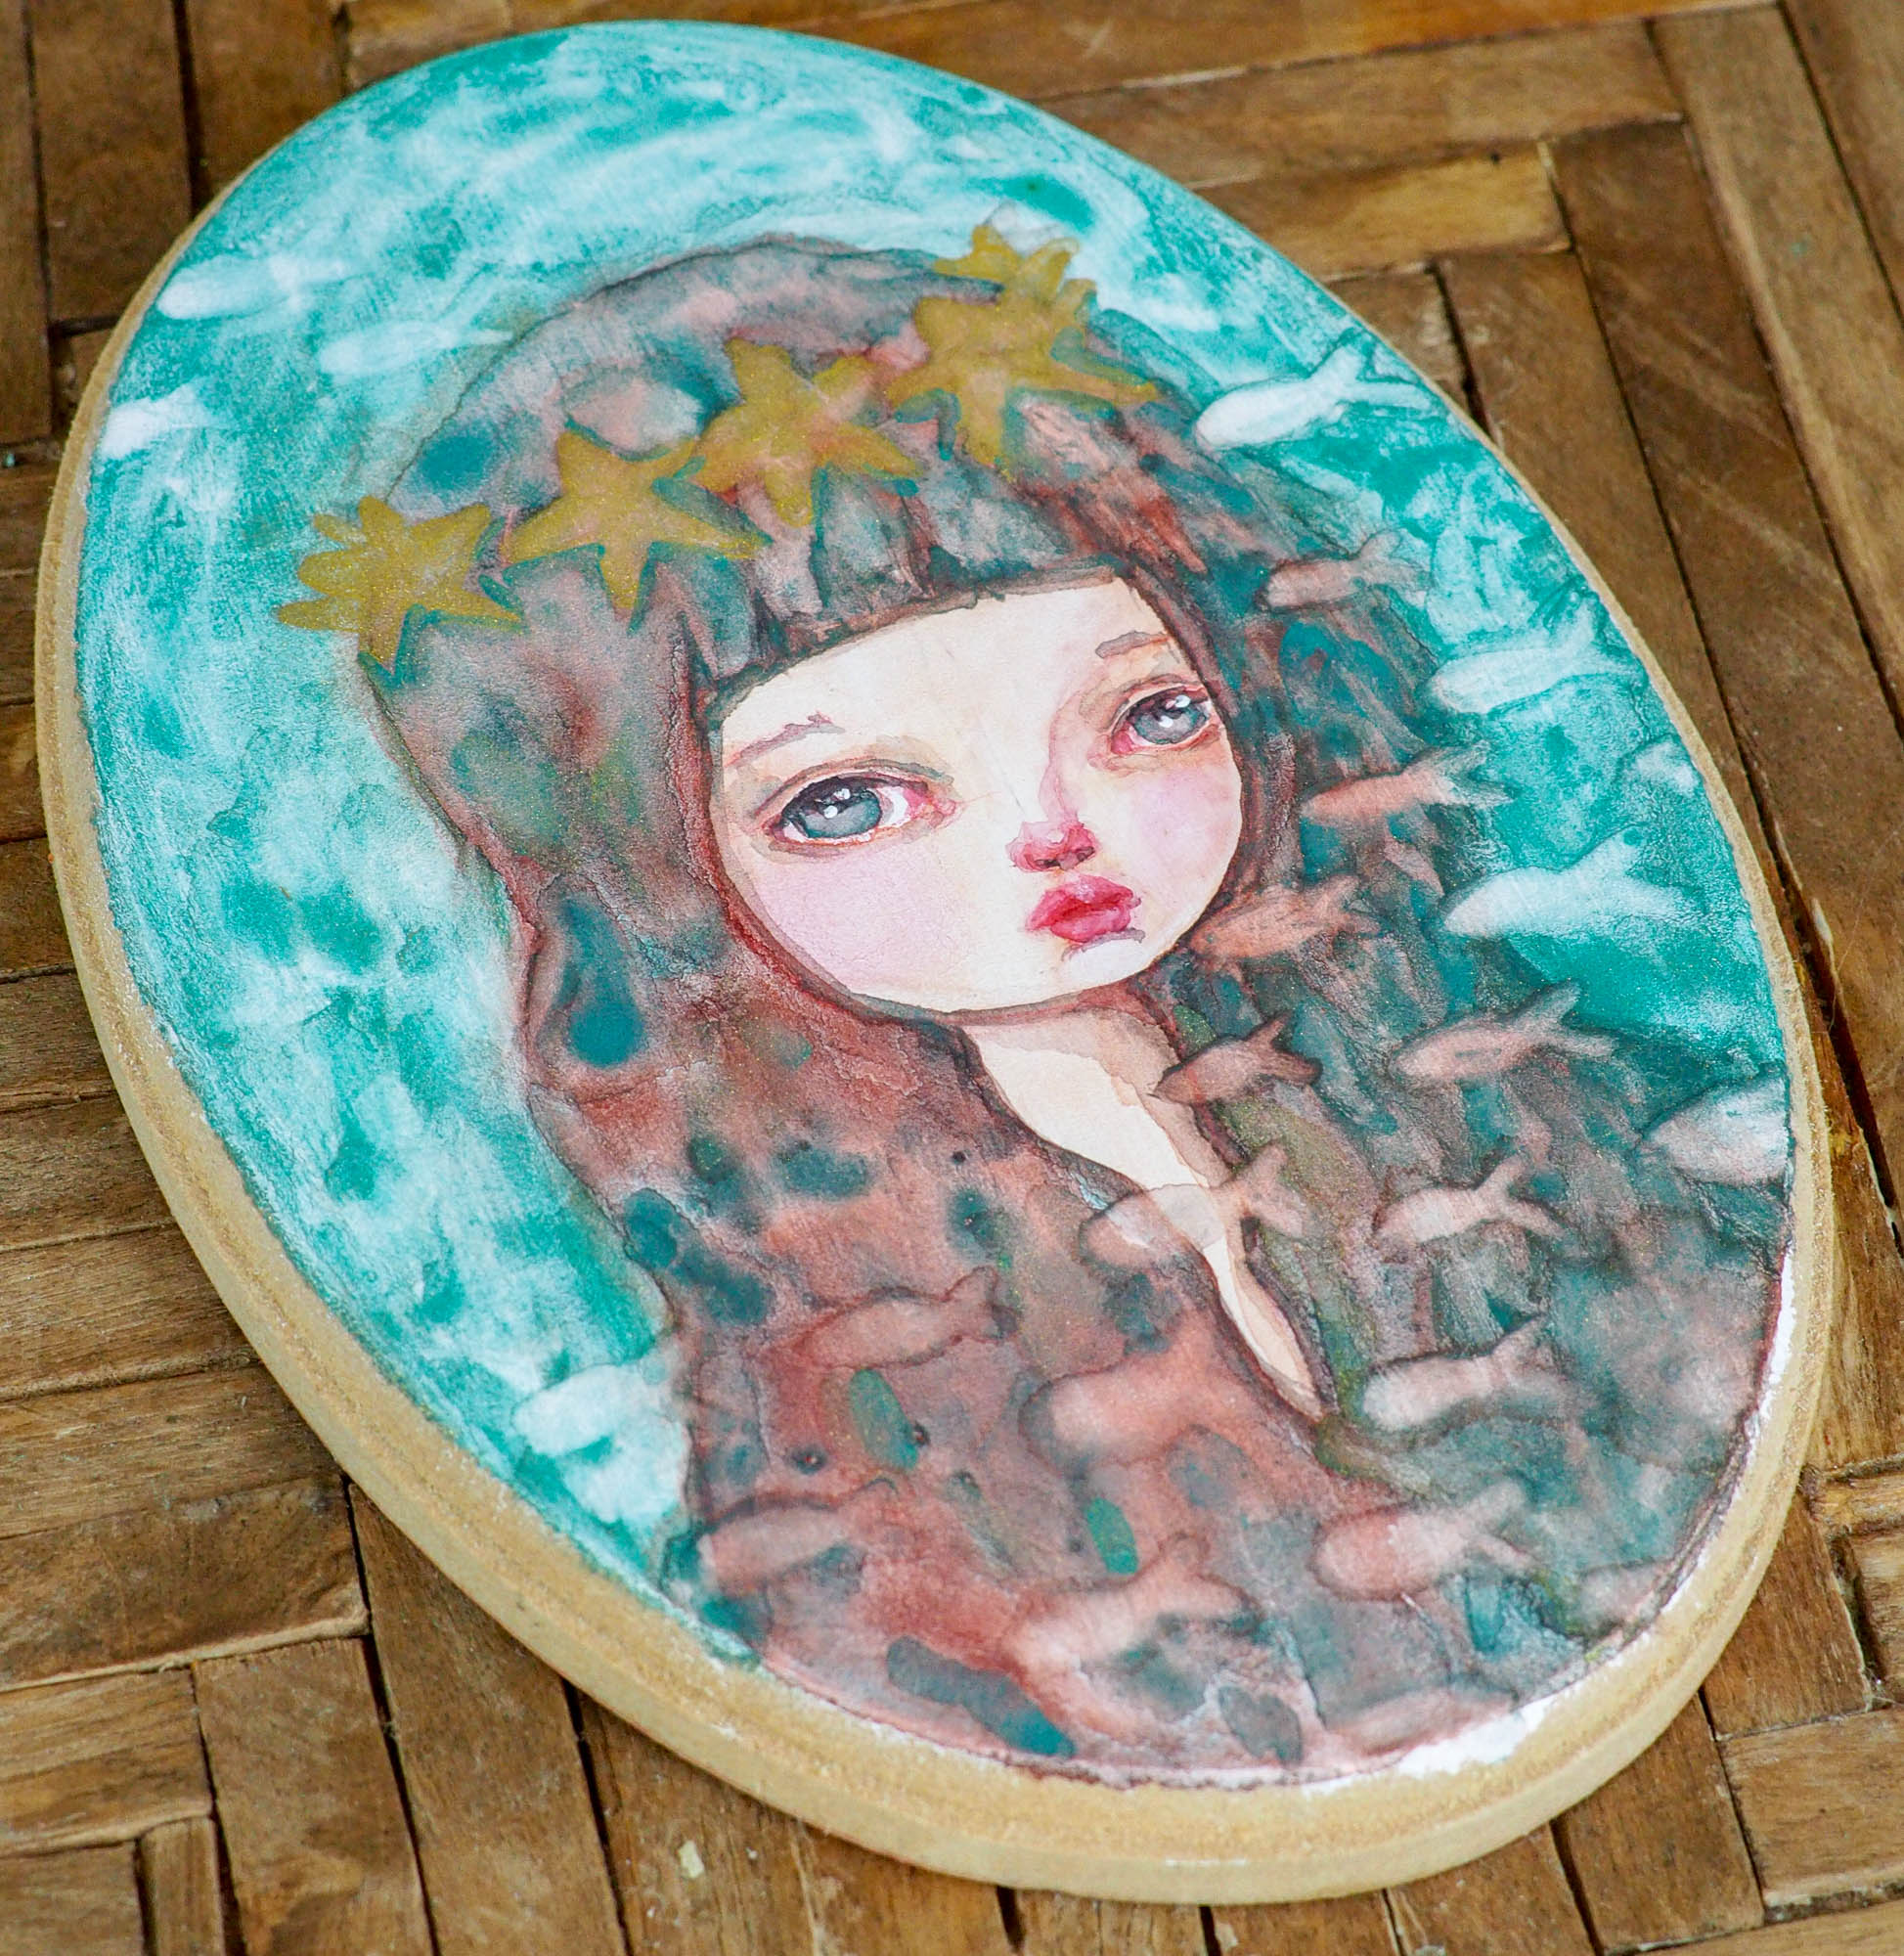 Mermaids are part of danita's painting repertoire, I love painting them! I am painting lots of watercolors now due my lack of space, but that has not stopped my creativity! I got a few oval wood panels and I have been using them to paint original watercolor paintings and illustration.